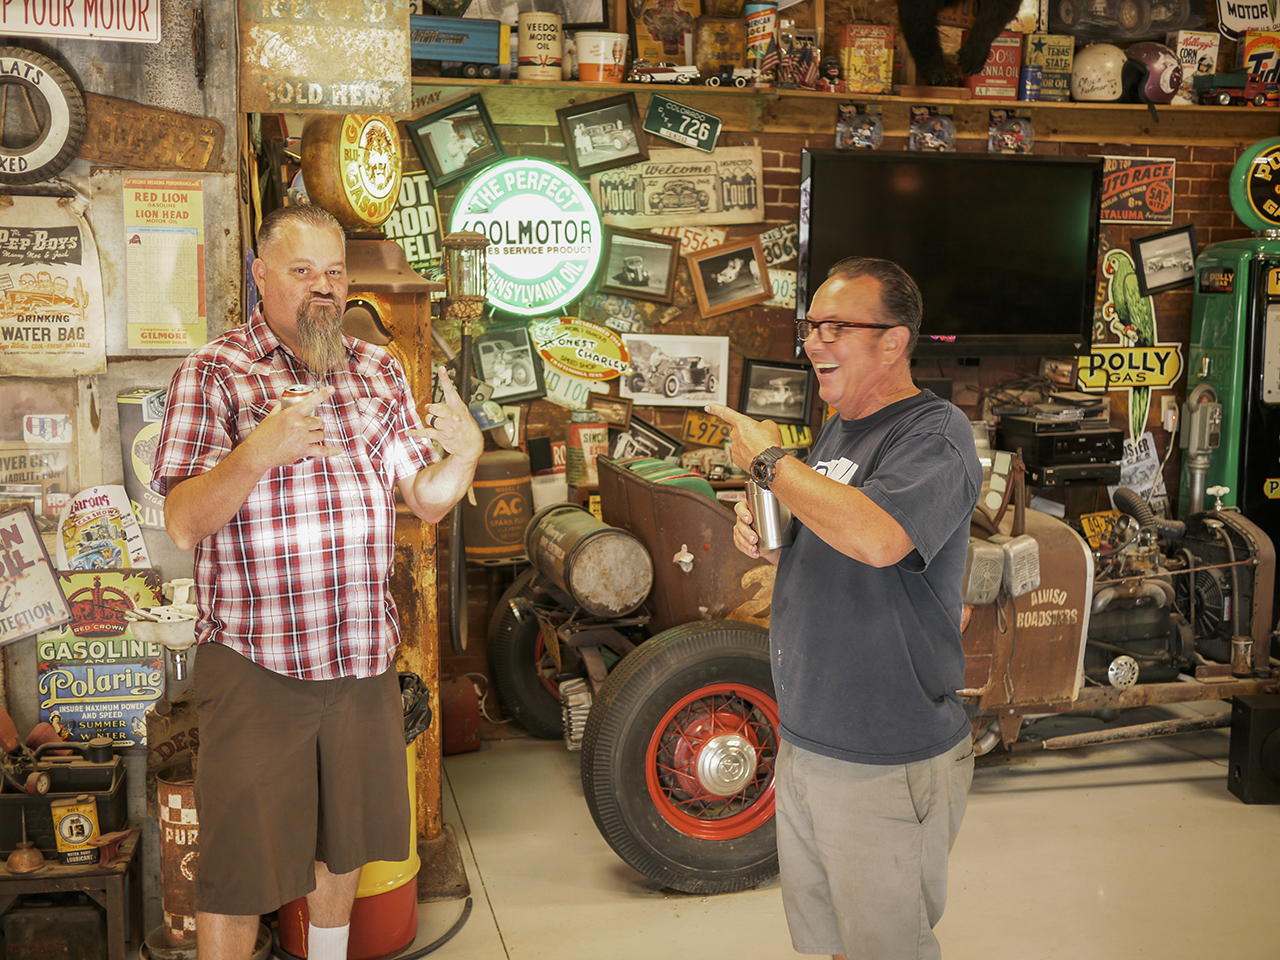 Hunter and Dean yucking it up in Jerry's shop. An amazing collection of automoblia.